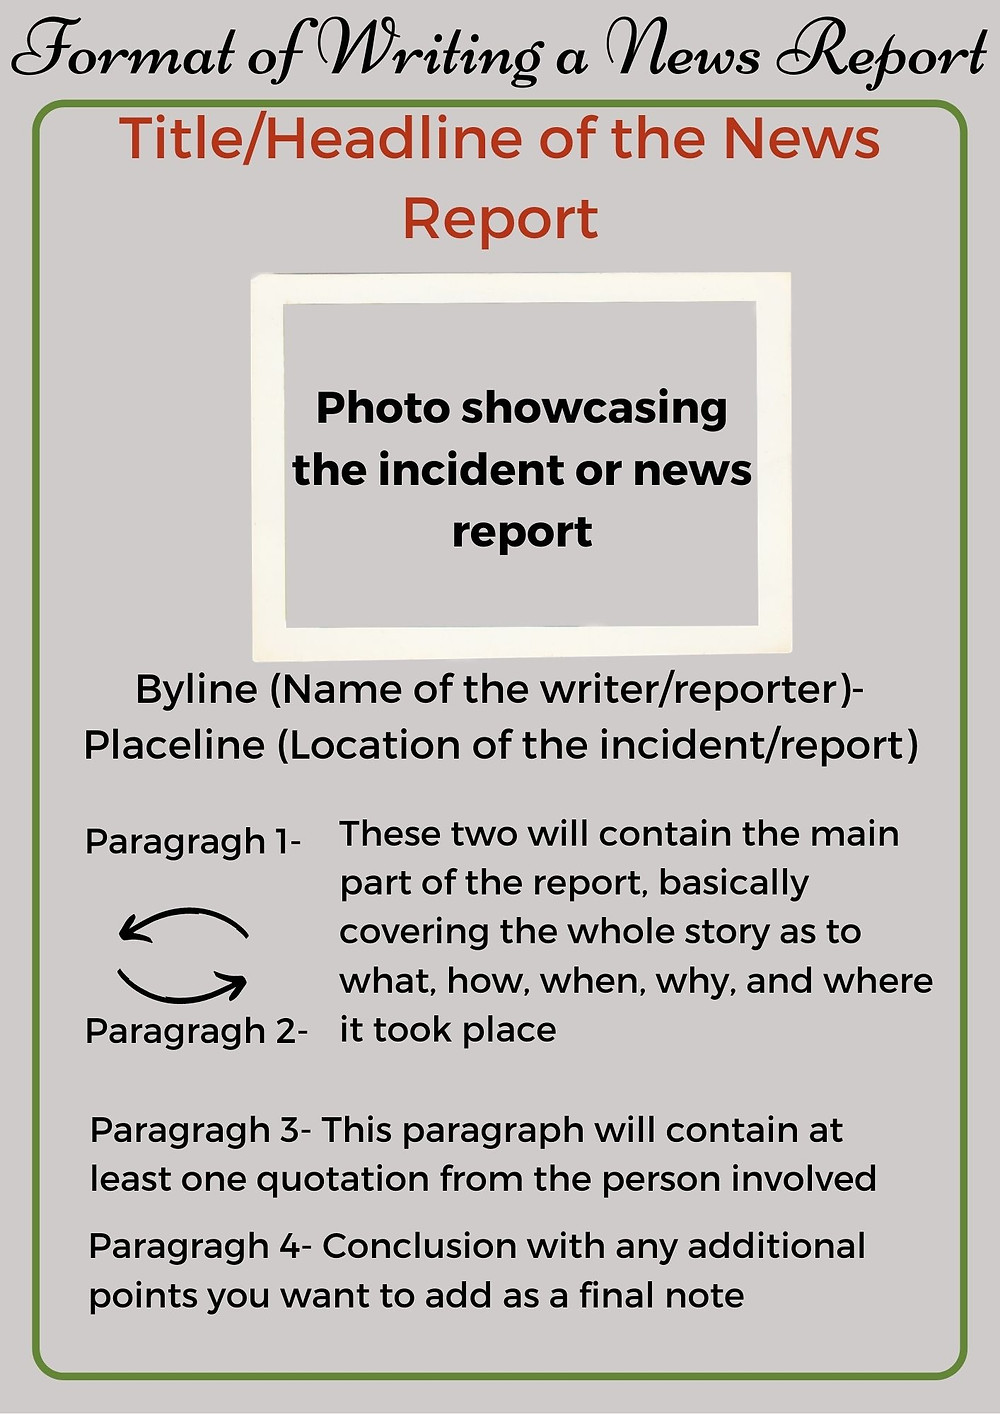 The image contains the format of writing a news report published in the article: Learn to write a news article in minutes| Become an expert in journalism